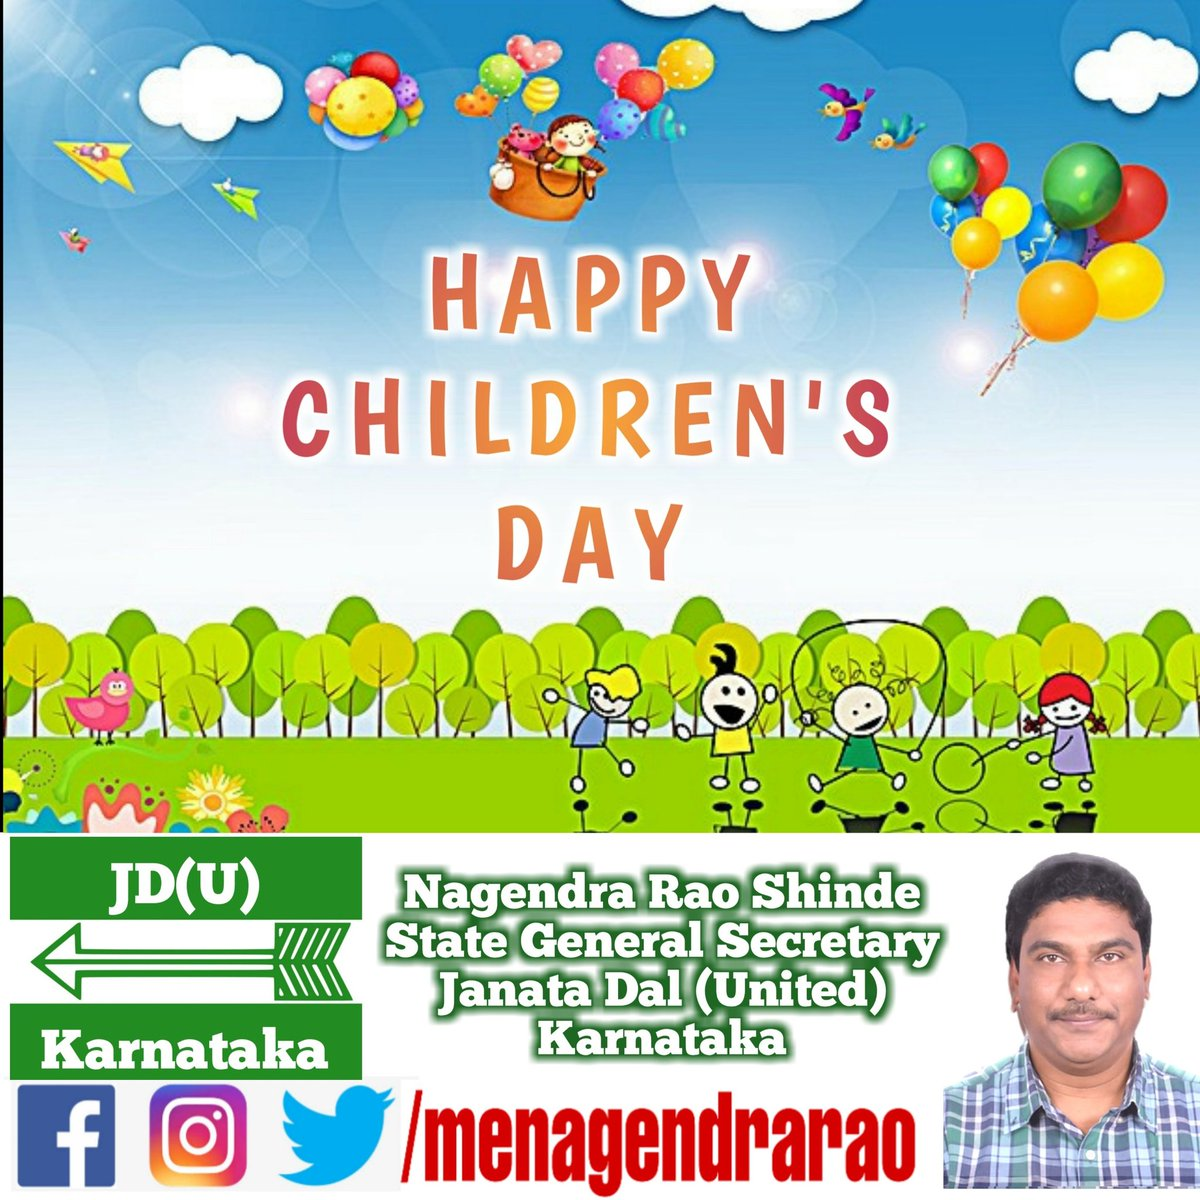 #ChildrensDay2019 https://t.co/whB6IcgU19